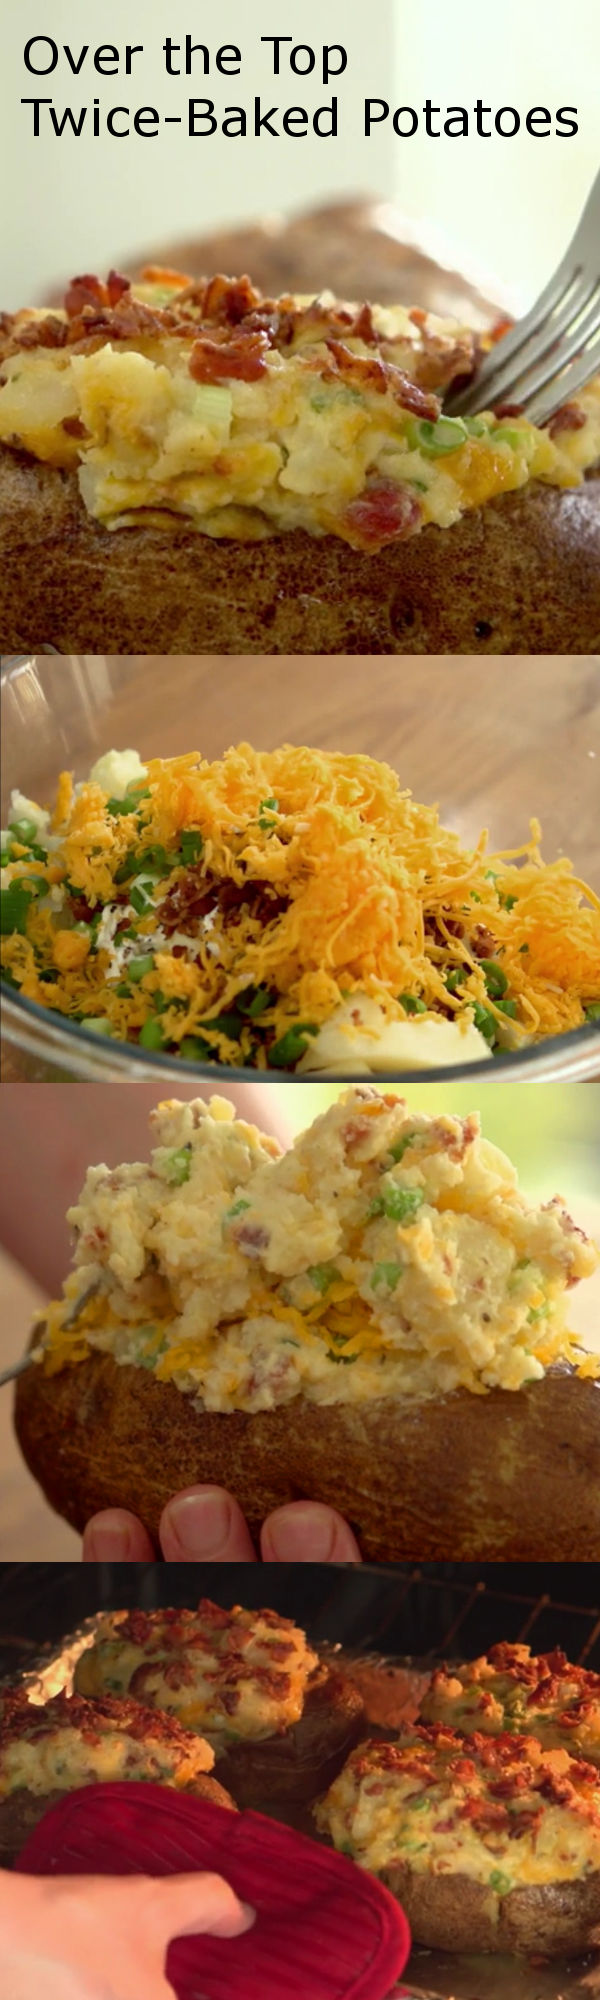 Photo of Twice-Baked Over-the-Top Potatoes